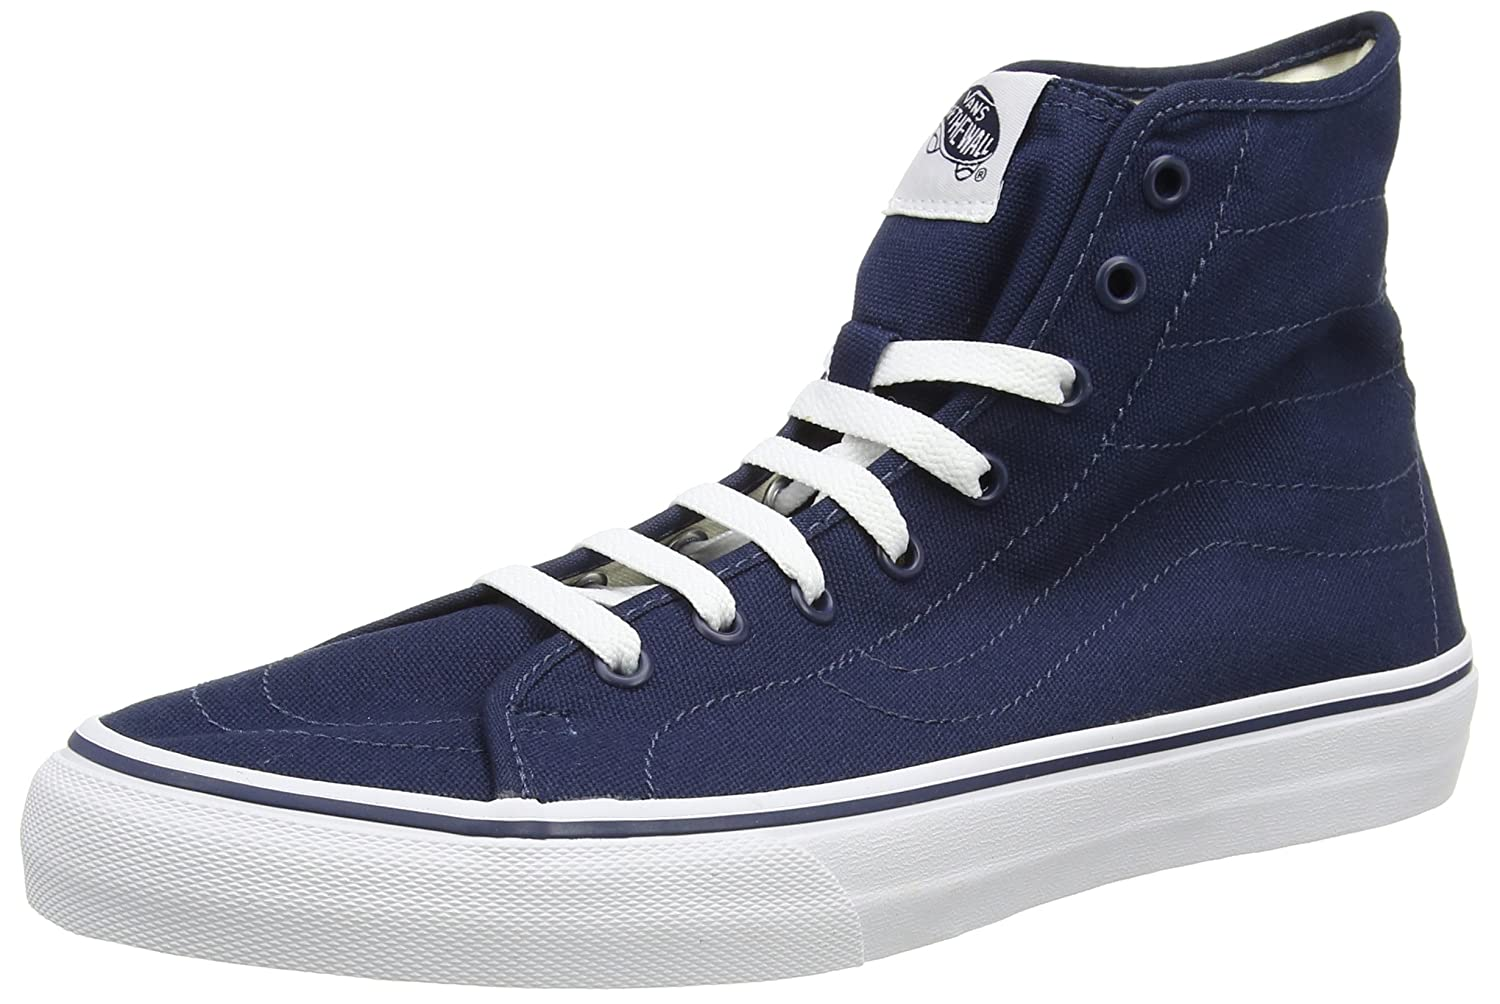 Vans U SK8-HI Unisex-Erwachsene Hohe Sneakers  43 EU|Blau ((Canvas) Dress Blues/True White)